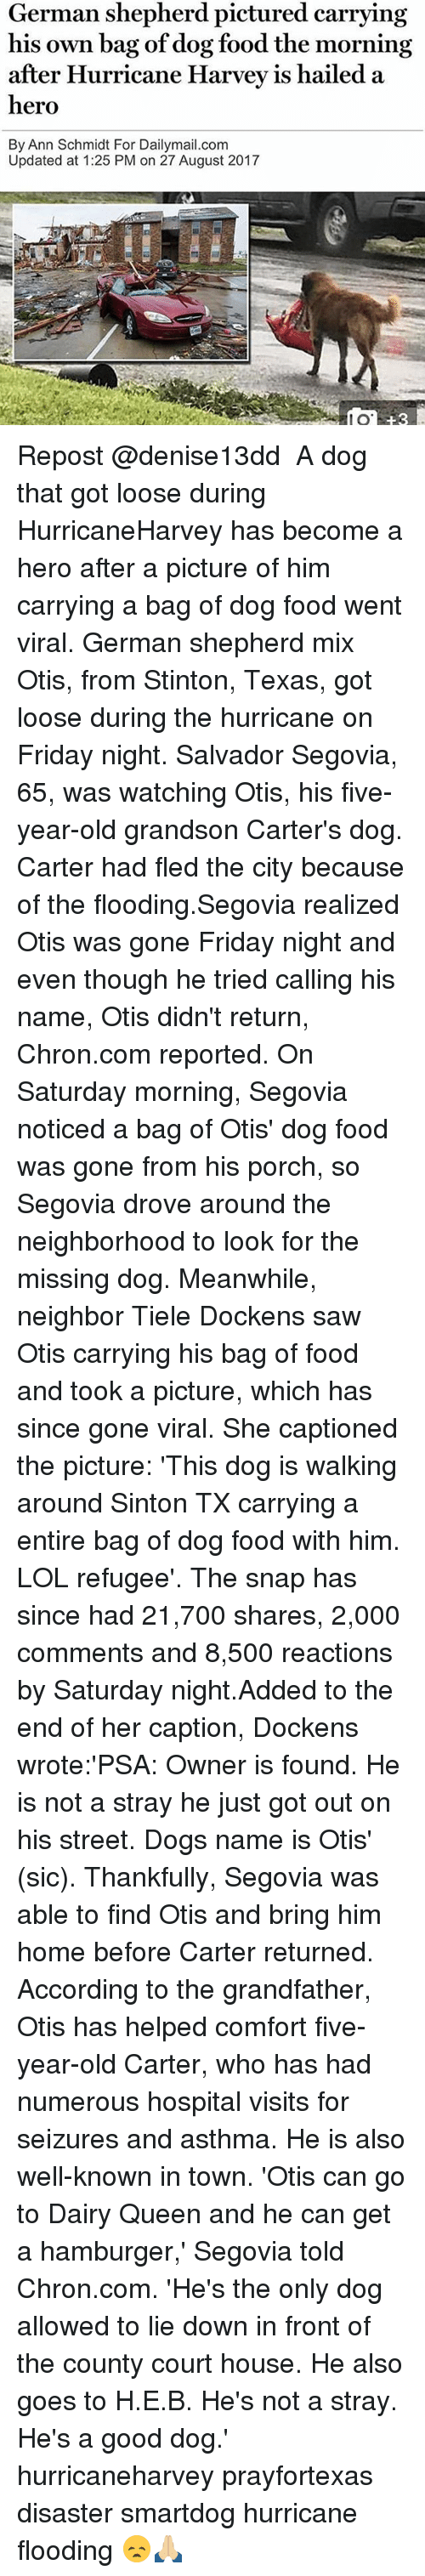 Dogs, Food, and Friday: German shepherd pictured carrying  his own bag of dog food the morning  after Hurricane Harvev is hailed a  hero  By Ann Schmidt For Dailymail.com  Updated at 1:25 PM on 27 August 2017  80  8 Repost @denise13dd ・・・ A dog that got loose during HurricaneHarvey has become a hero after a picture of him carrying a bag of dog food went viral. German shepherd mix Otis, from Stinton, Texas, got loose during the hurricane on Friday night. Salvador Segovia, 65, was watching Otis, his five-year-old grandson Carter's dog. Carter had fled the city because of the flooding.Segovia realized Otis was gone Friday night and even though he tried calling his name, Otis didn't return, Chron.com reported. On Saturday morning, Segovia noticed a bag of Otis' dog food was gone from his porch, so Segovia drove around the neighborhood to look for the missing dog. Meanwhile, neighbor Tiele Dockens saw Otis carrying his bag of food and took a picture, which has since gone viral. She captioned the picture: 'This dog is walking around Sinton TX carrying a entire bag of dog food with him. LOL refugee'. The snap has since had 21,700 shares, 2,000 comments and 8,500 reactions by Saturday night.Added to the end of her caption, Dockens wrote:'PSA: Owner is found. He is not a stray he just got out on his street. Dogs name is Otis' (sic). Thankfully, Segovia was able to find Otis and bring him home before Carter returned. According to the grandfather, Otis has helped comfort five-year-old Carter, who has had numerous hospital visits for seizures and asthma. He is also well-known in town. 'Otis can go to Dairy Queen and he can get a hamburger,' Segovia told Chron.com. 'He's the only dog allowed to lie down in front of the county court house. He also goes to H.E.B. He's not a stray. He's a good dog.' hurricaneharvey prayfortexas disaster smartdog hurricane flooding 😞🙏🏼